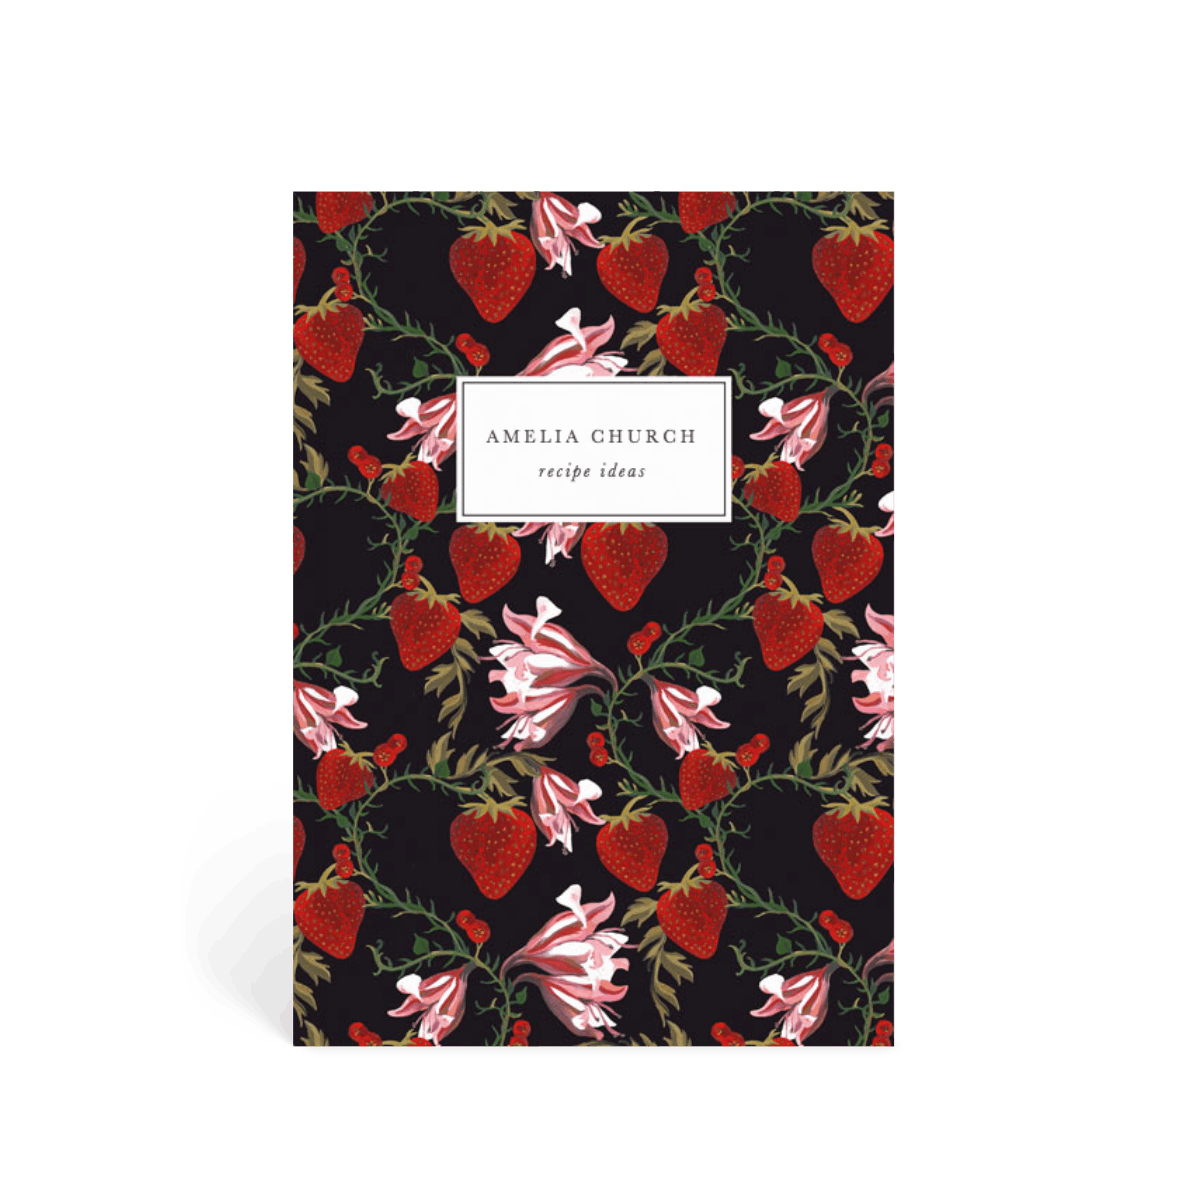 Https%3a%2f%2fwww.papier.com%2fproduct image%2f47159%2f25%2fstrawberry floral 11563 front 1539706481.png?ixlib=rb 1.1